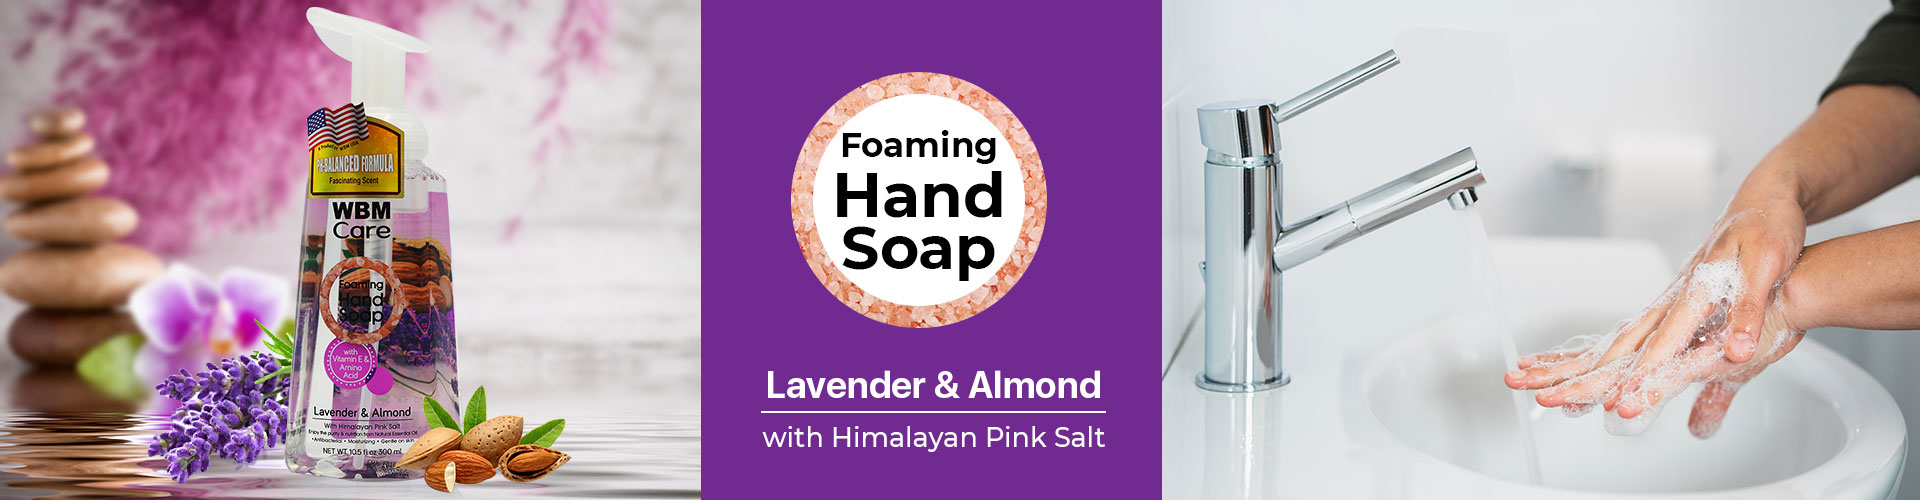 Foaming Hand Wash, Lavender and Almond